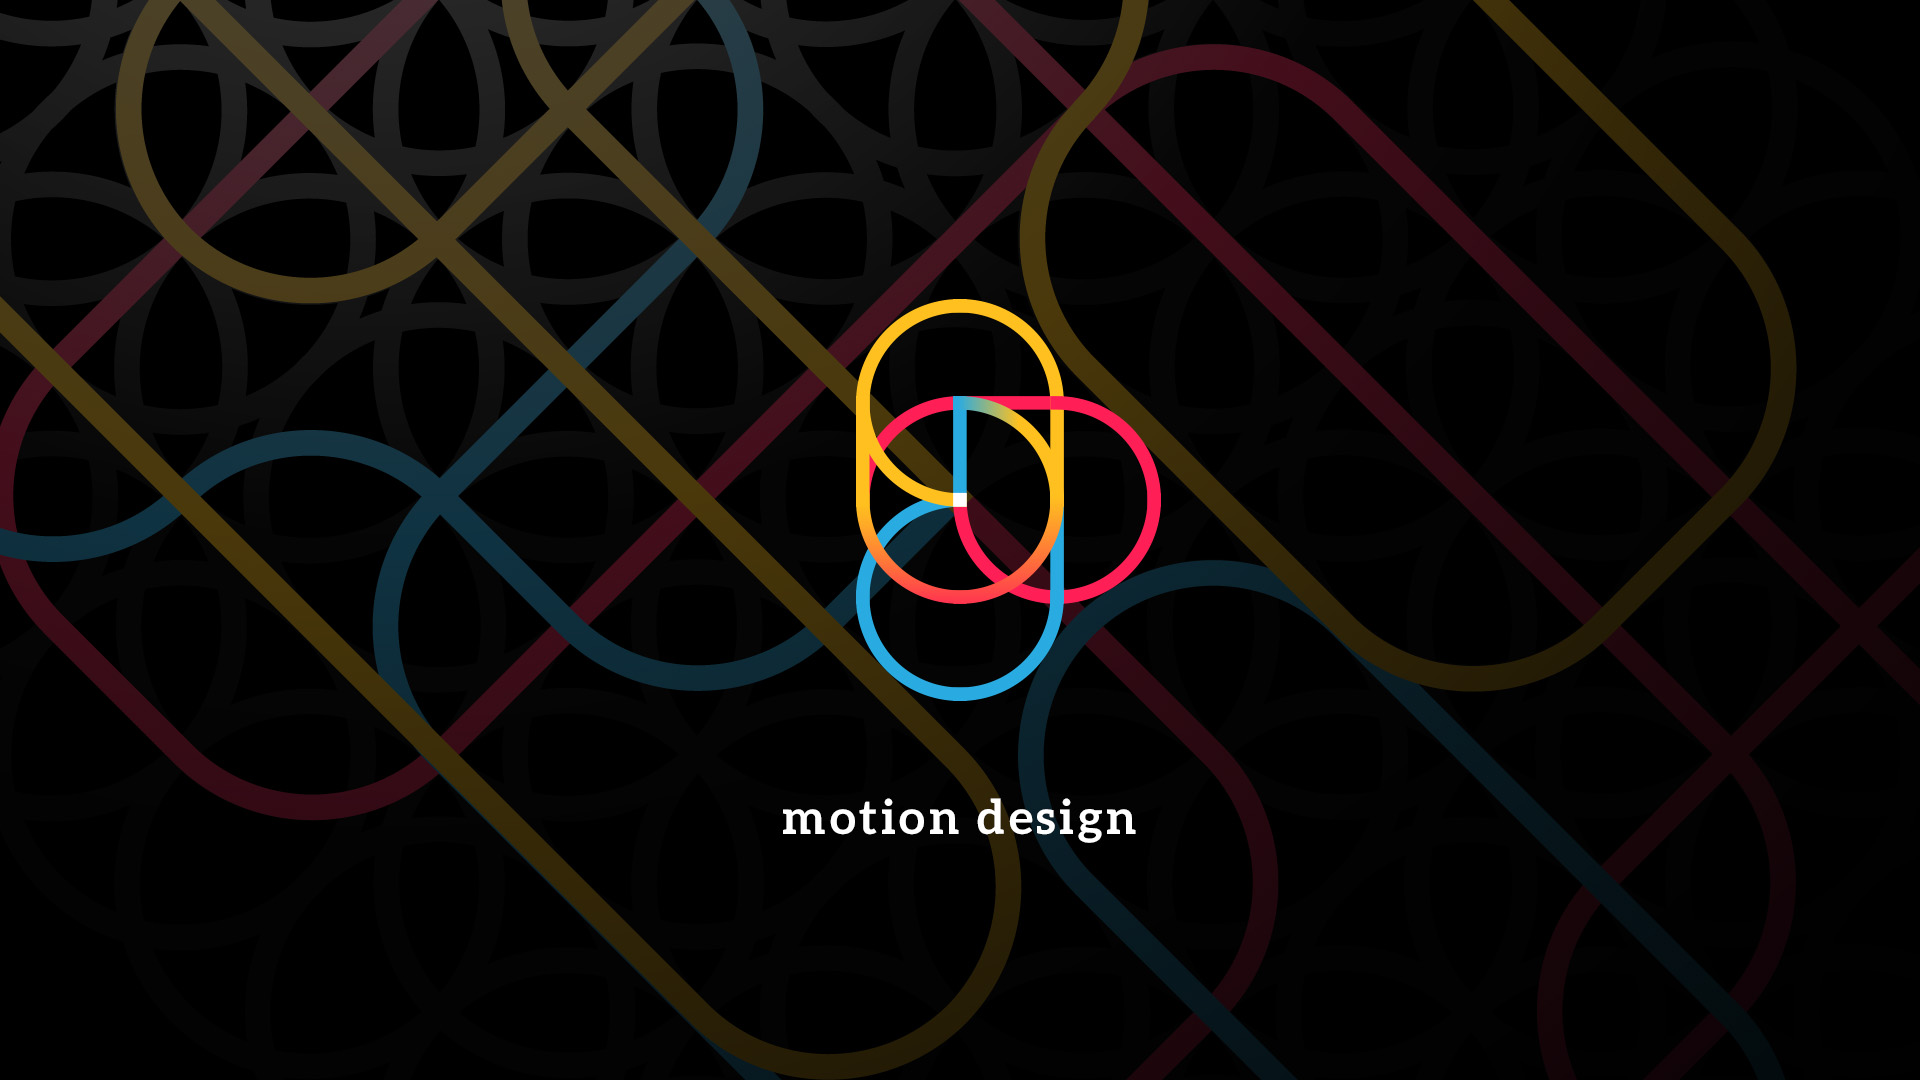 homeSlide - Spread, motion design